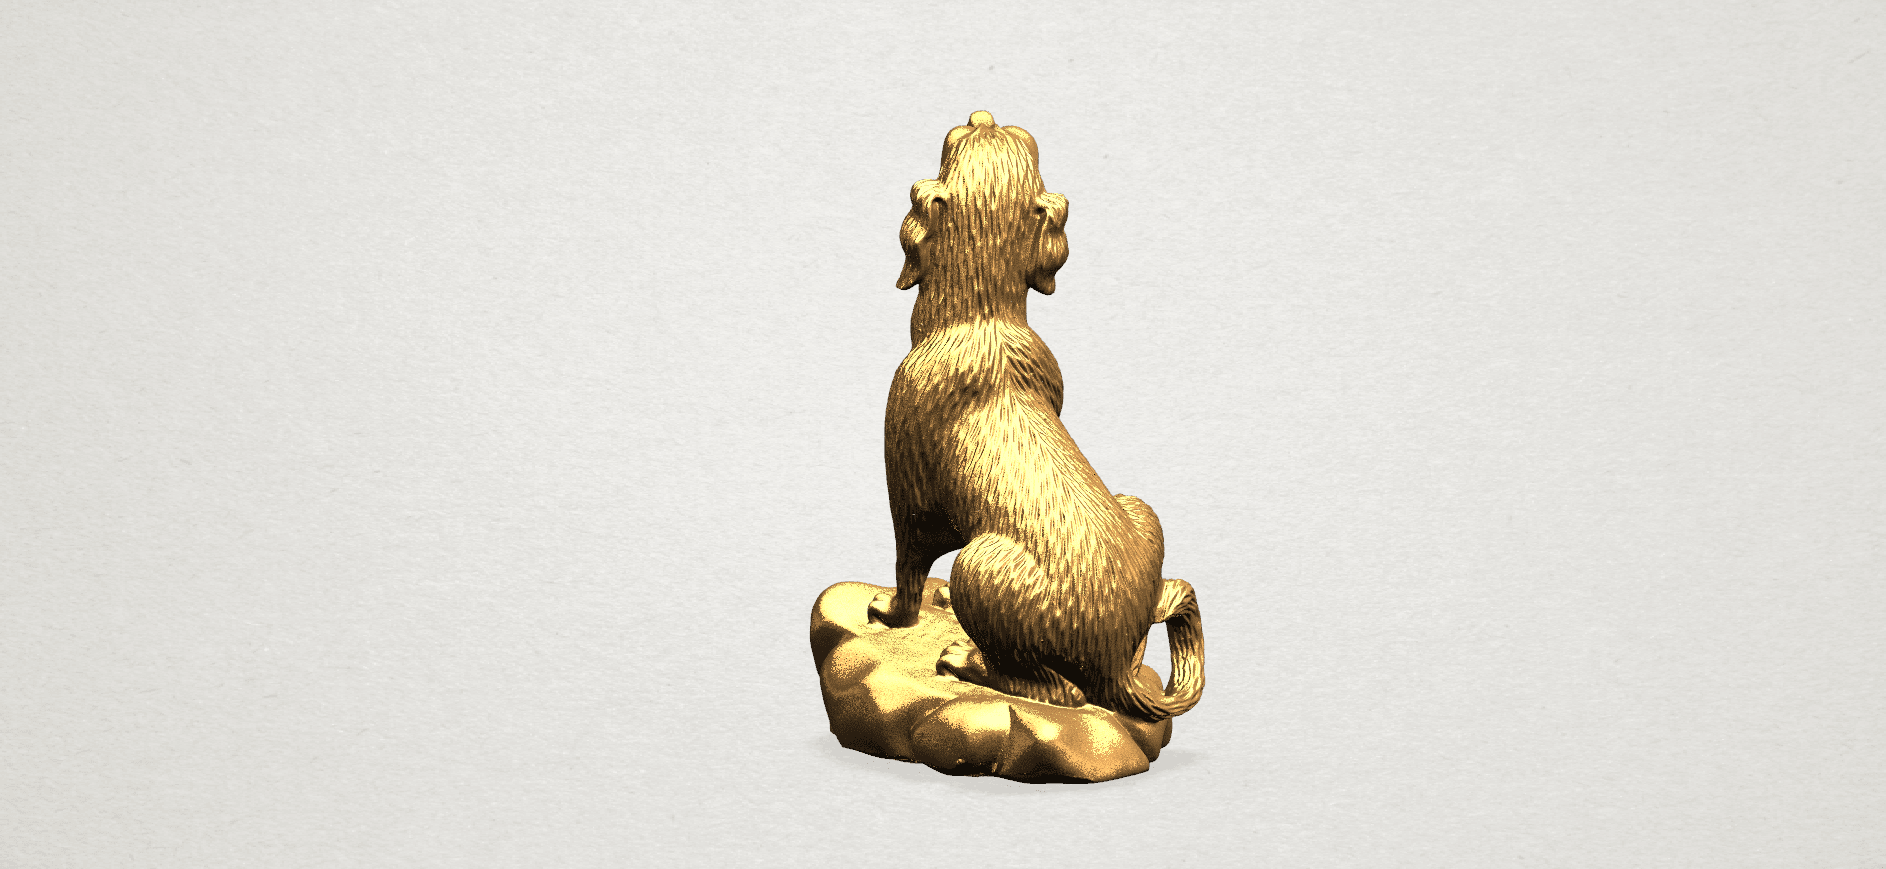 ZChinese Horoscope11-B02.png Download free STL file Chinese Horoscope 11 Dog • 3D print design, GeorgesNikkei